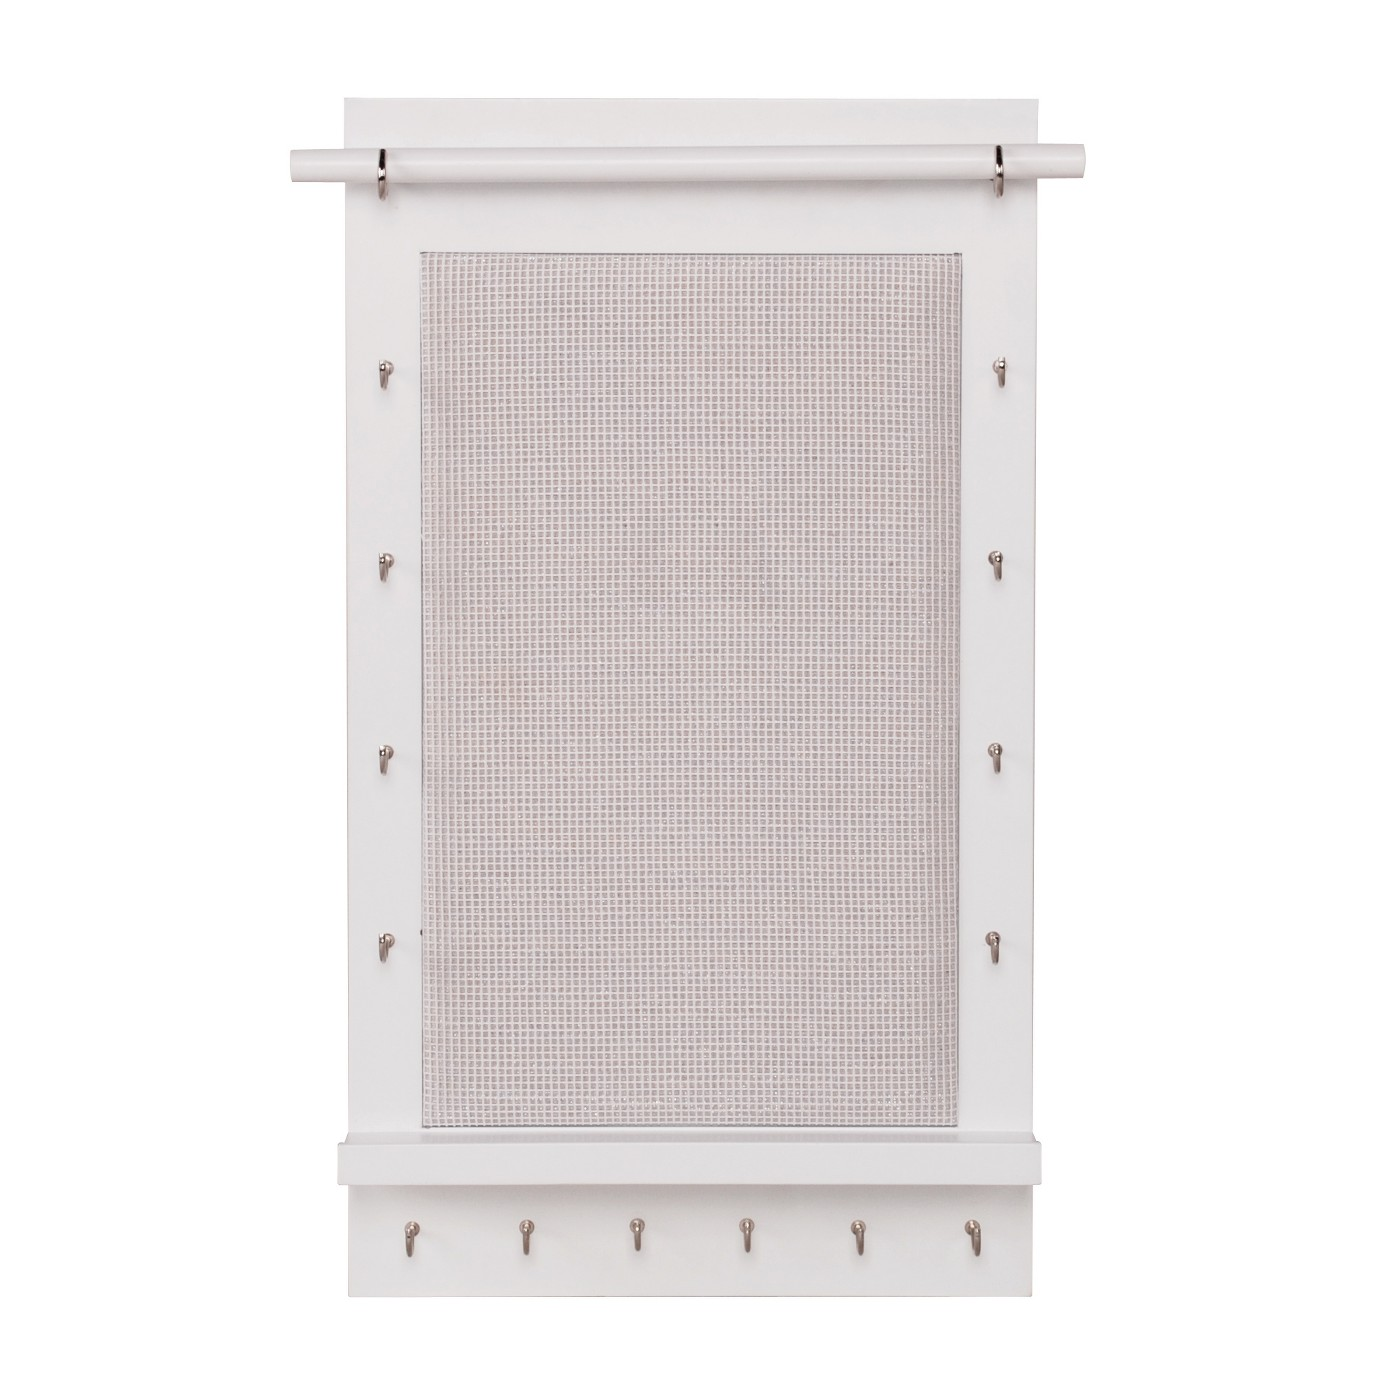 Charlotte Wall Mounted Jewelry Organizer, $20 at Target - A cute white hanger for necklaces, bracelets, and hook earrings (they go on the center mesh).